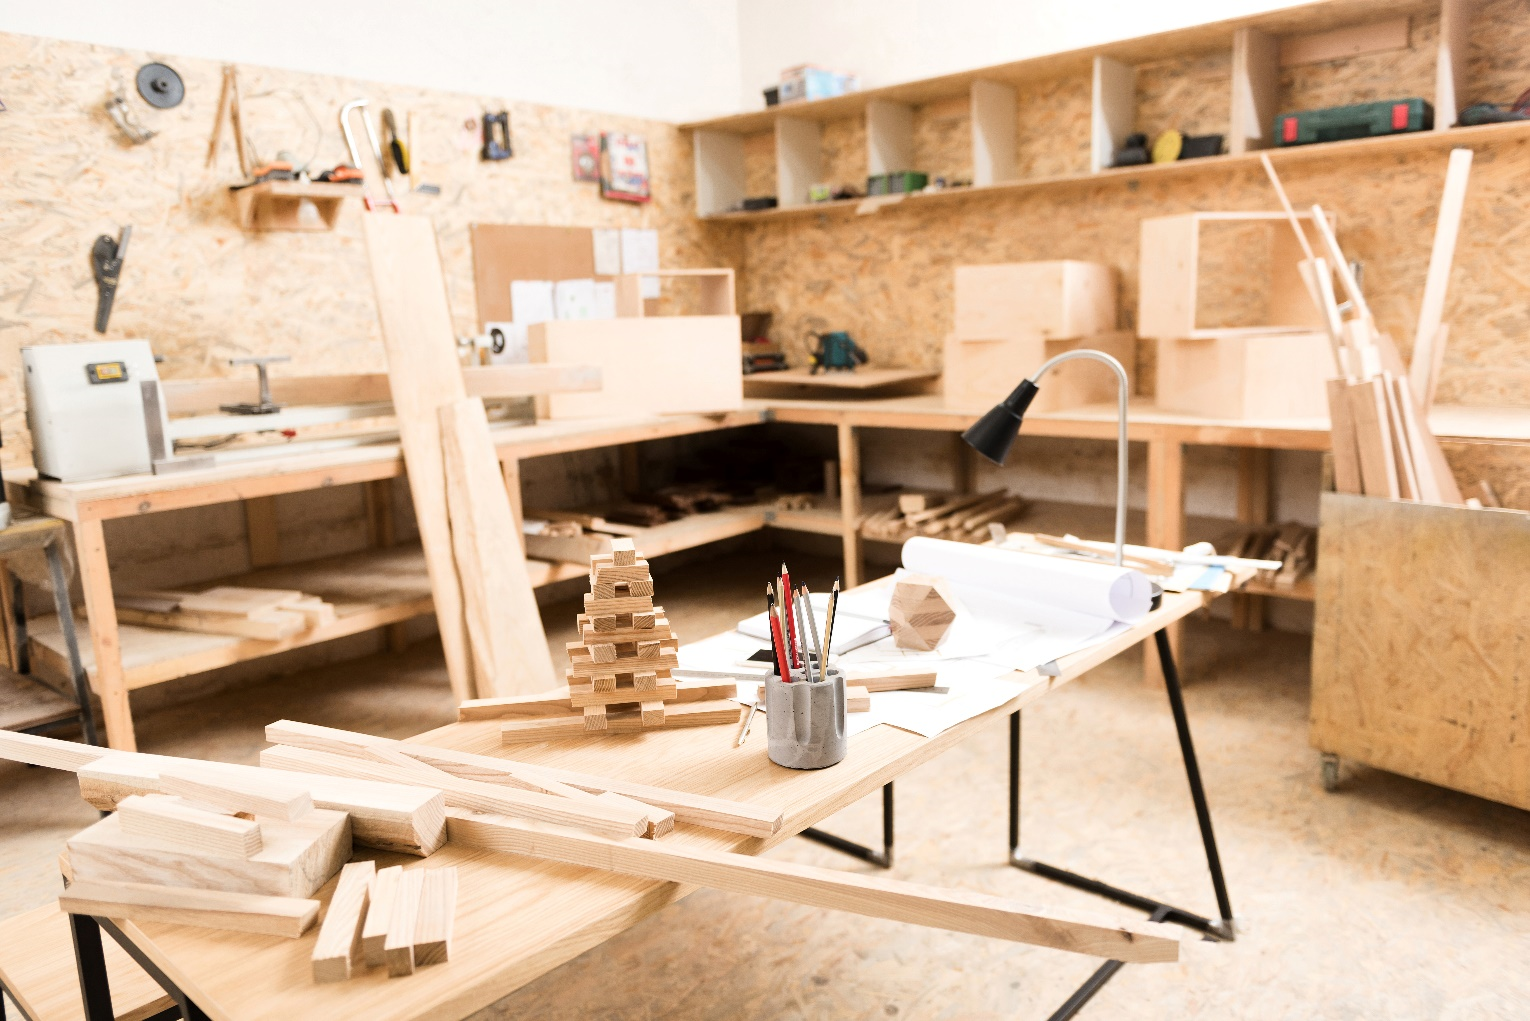 A wood-working workshop.